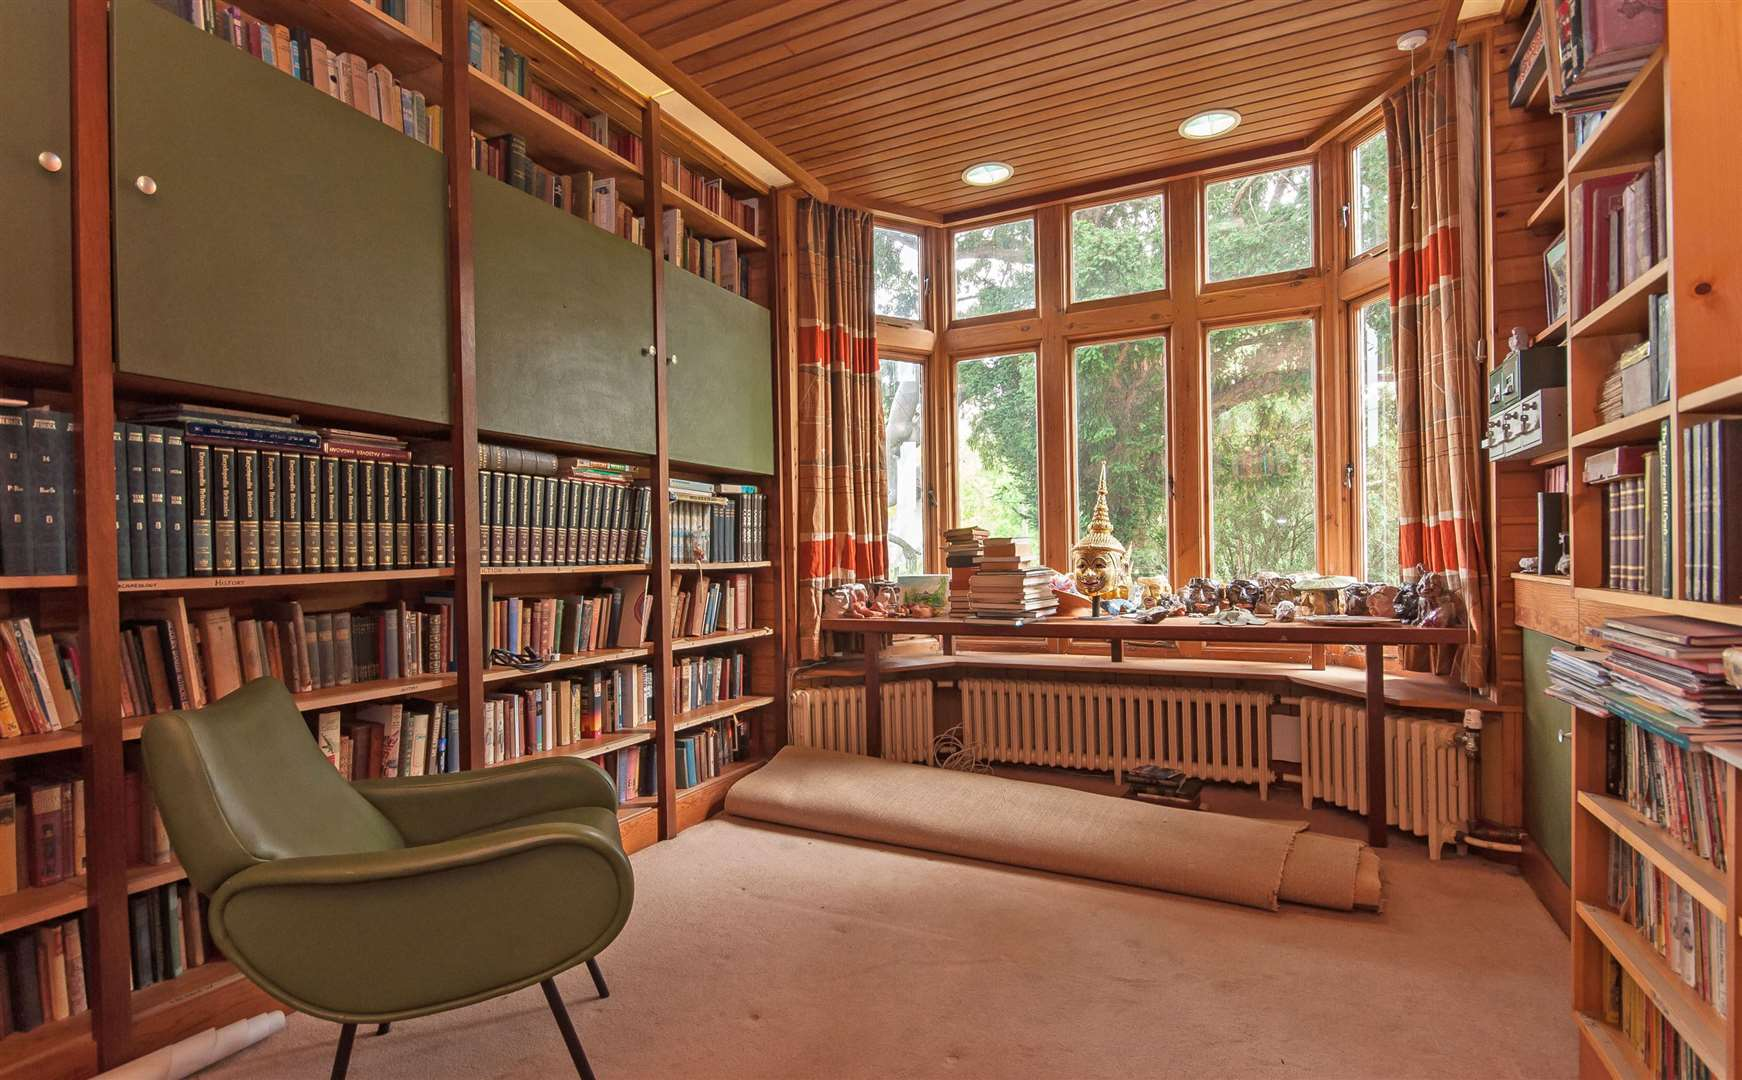 The library at Boley Hill House